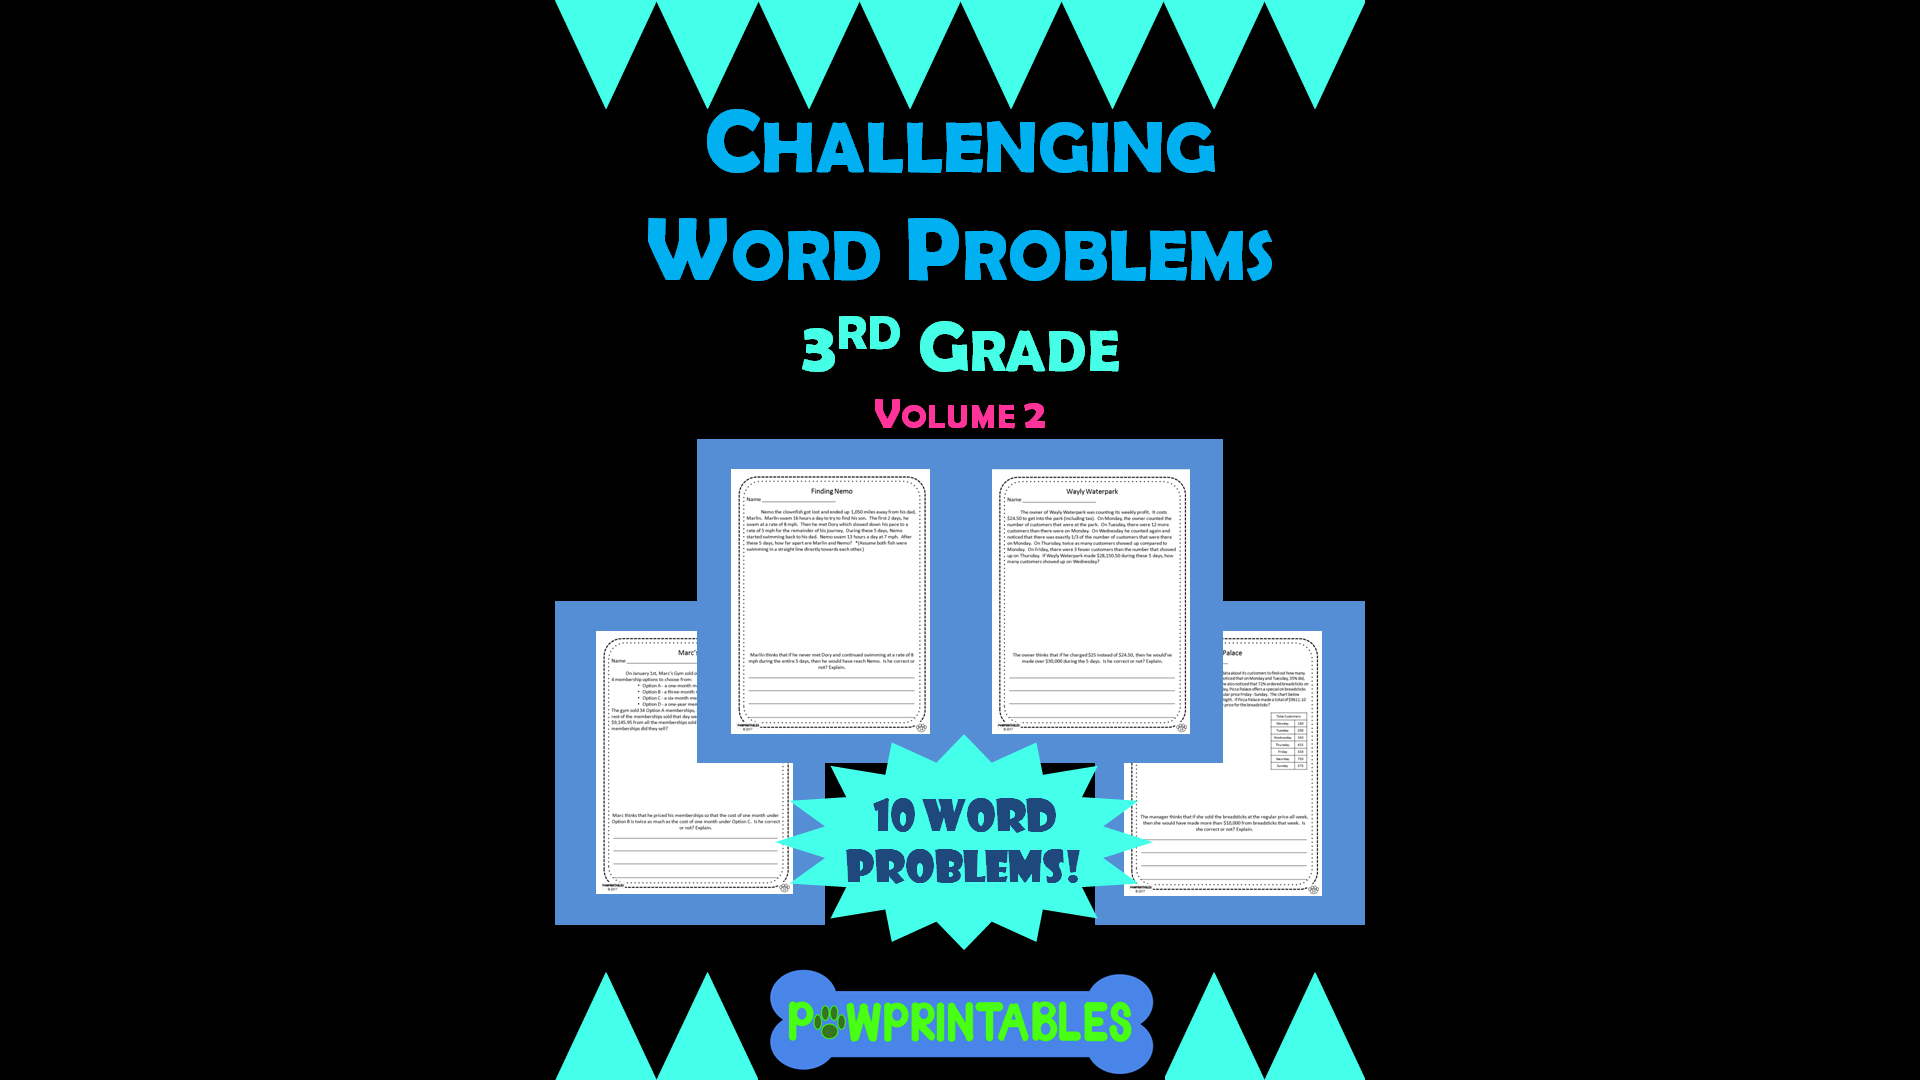 Challenging Word Problems